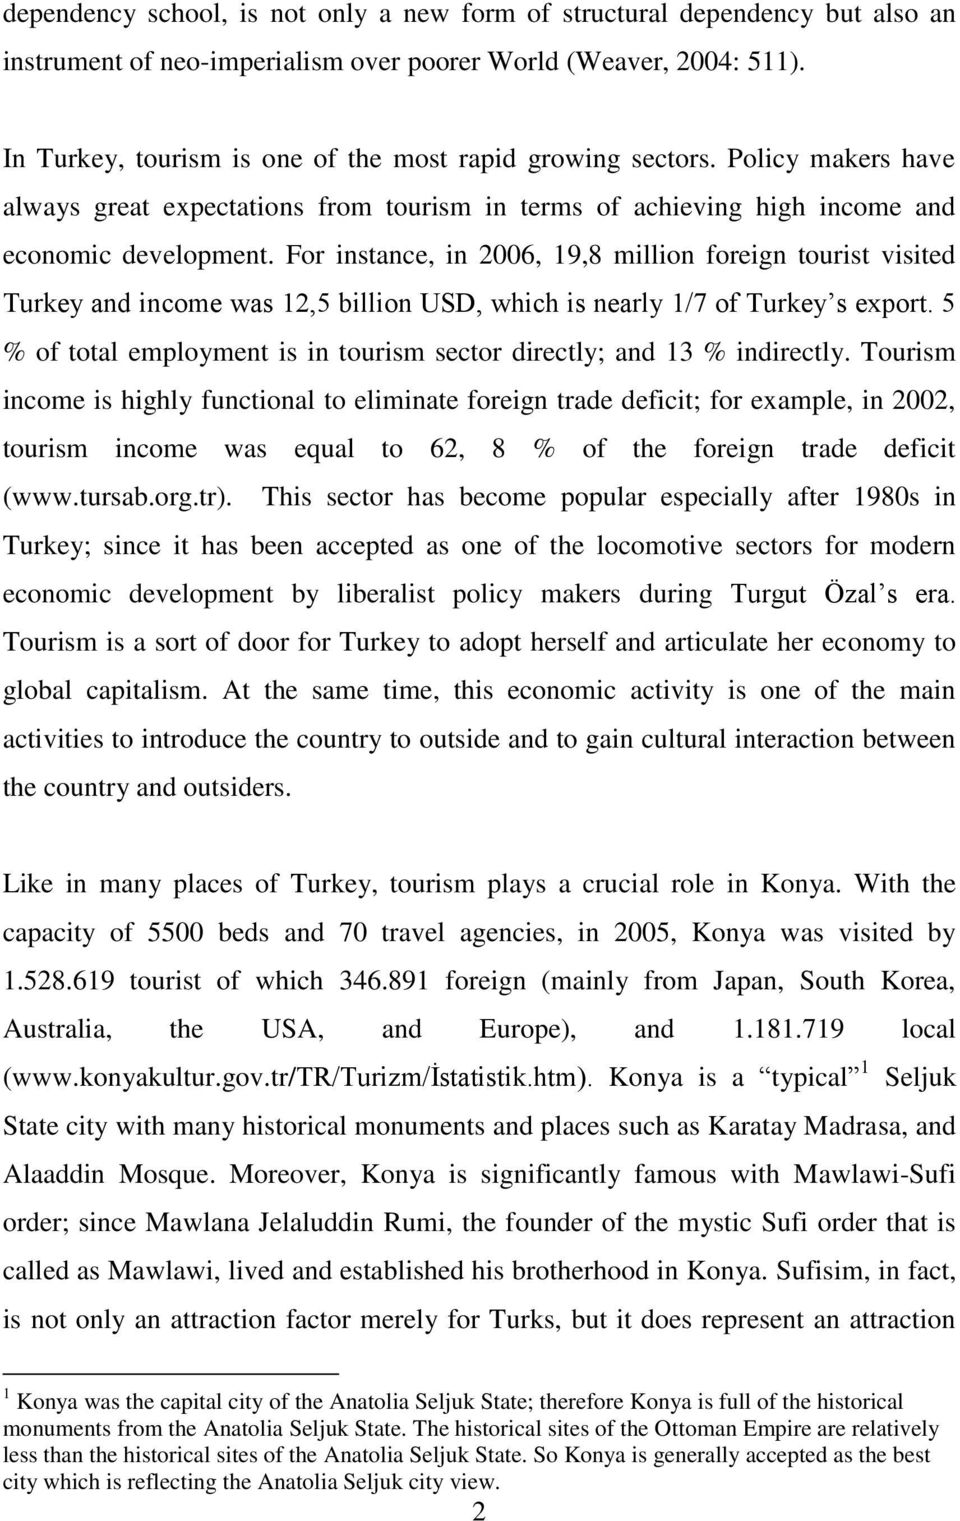 For instance, in 2006, 19,8 million foreign tourist visited Turkey and income was 12,5 billion USD, which is nearly 1/7 of Turkey s export.